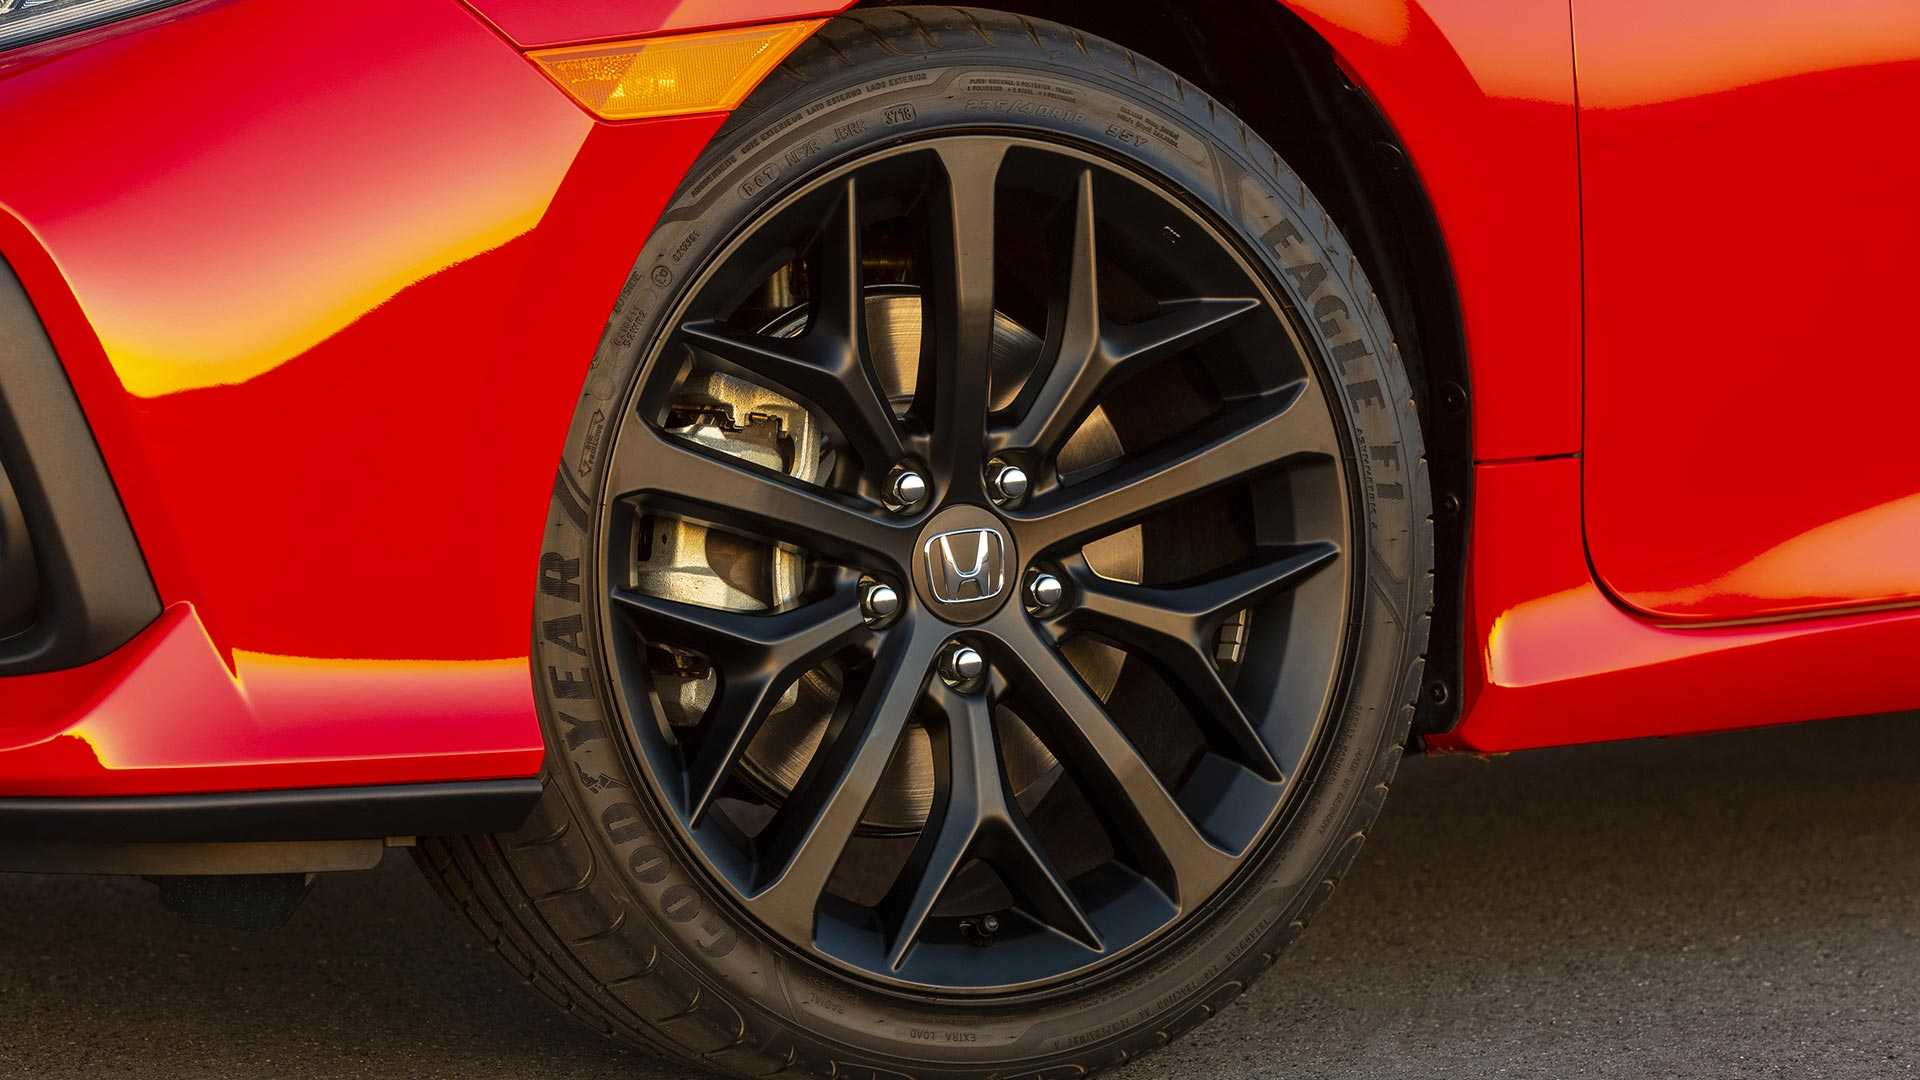 2020 Honda Civic Si Coupe Wheel Wallpapers (10)